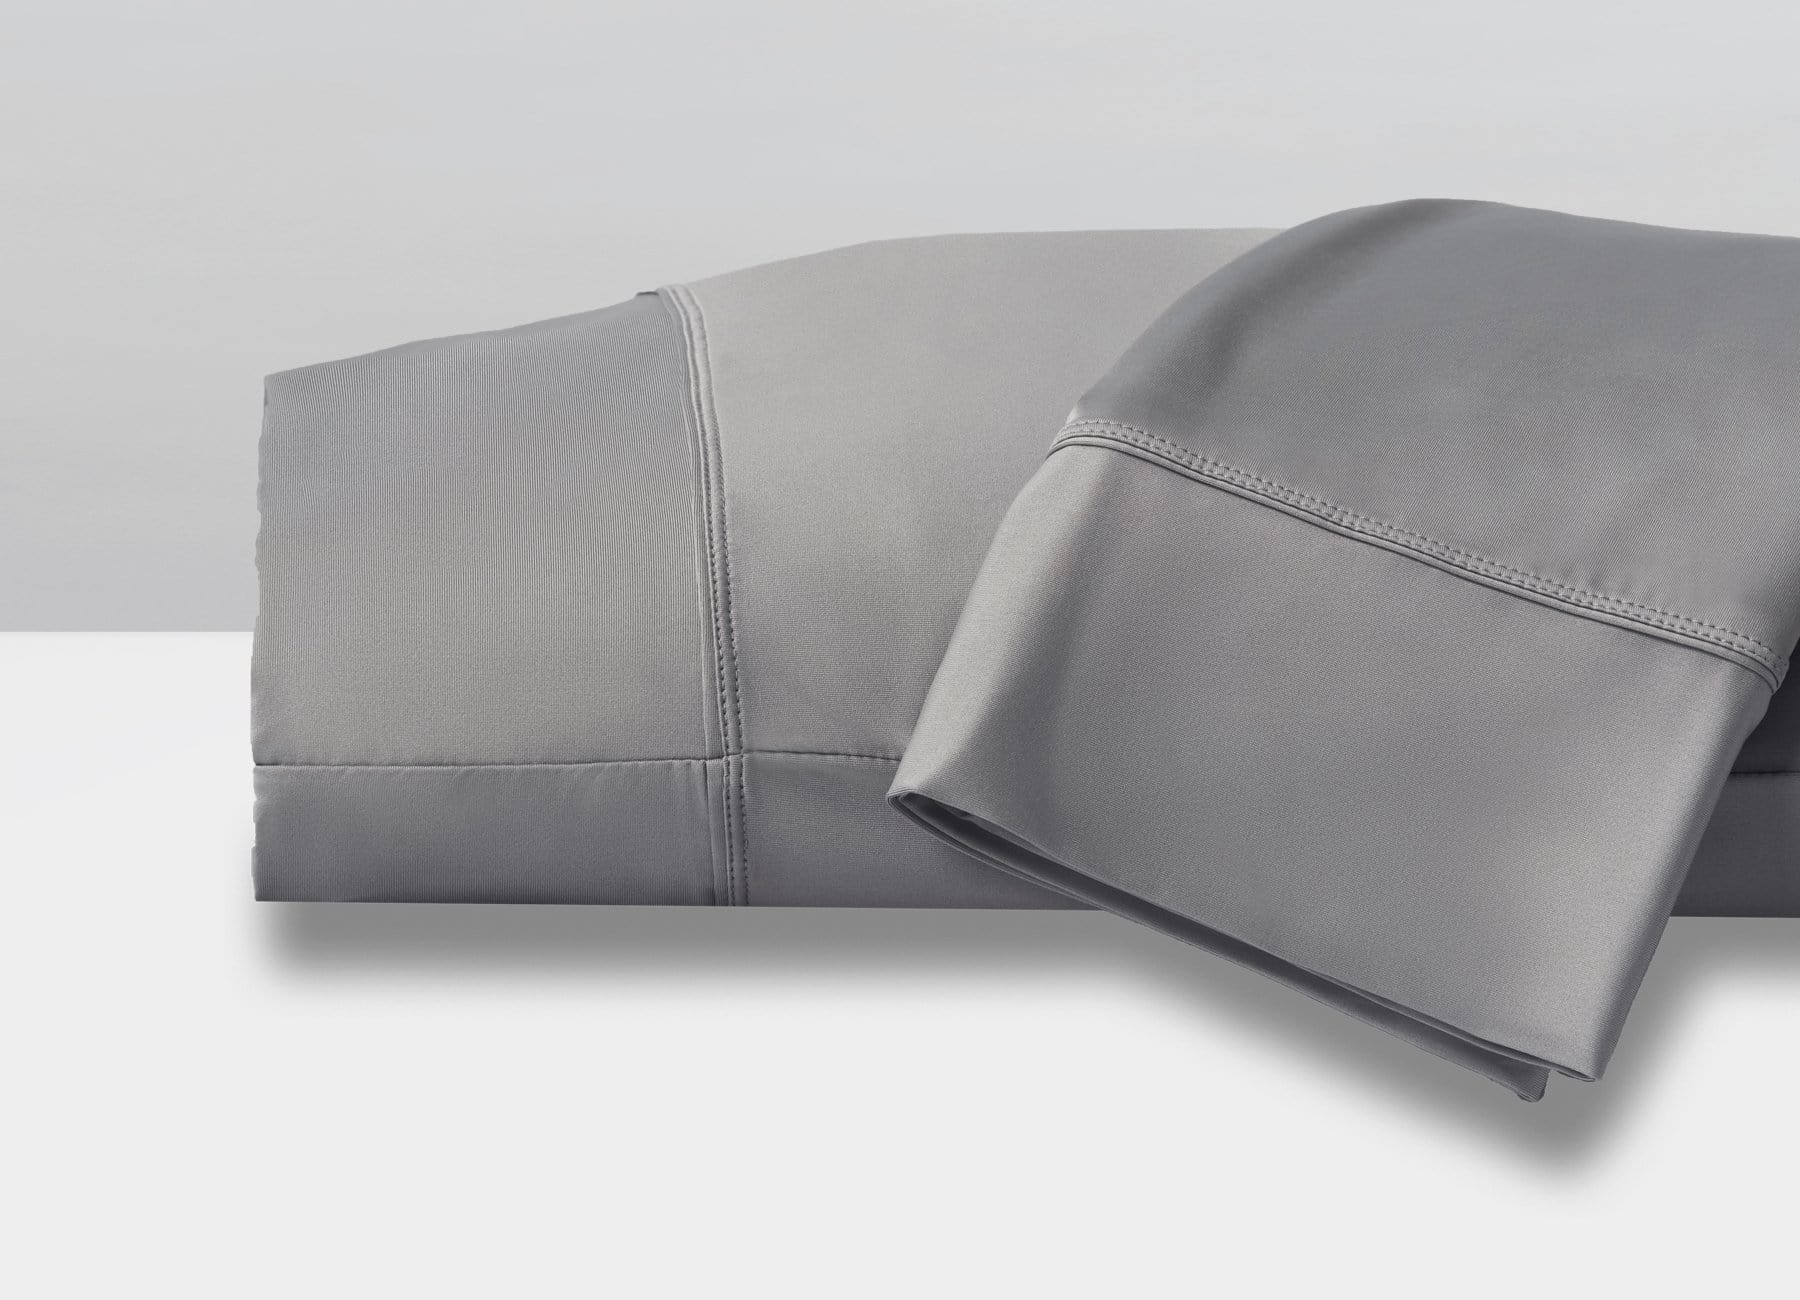 ORIGINAL PERFORMANCE Pillowcases shown in graphite #choose-your-color_graphite